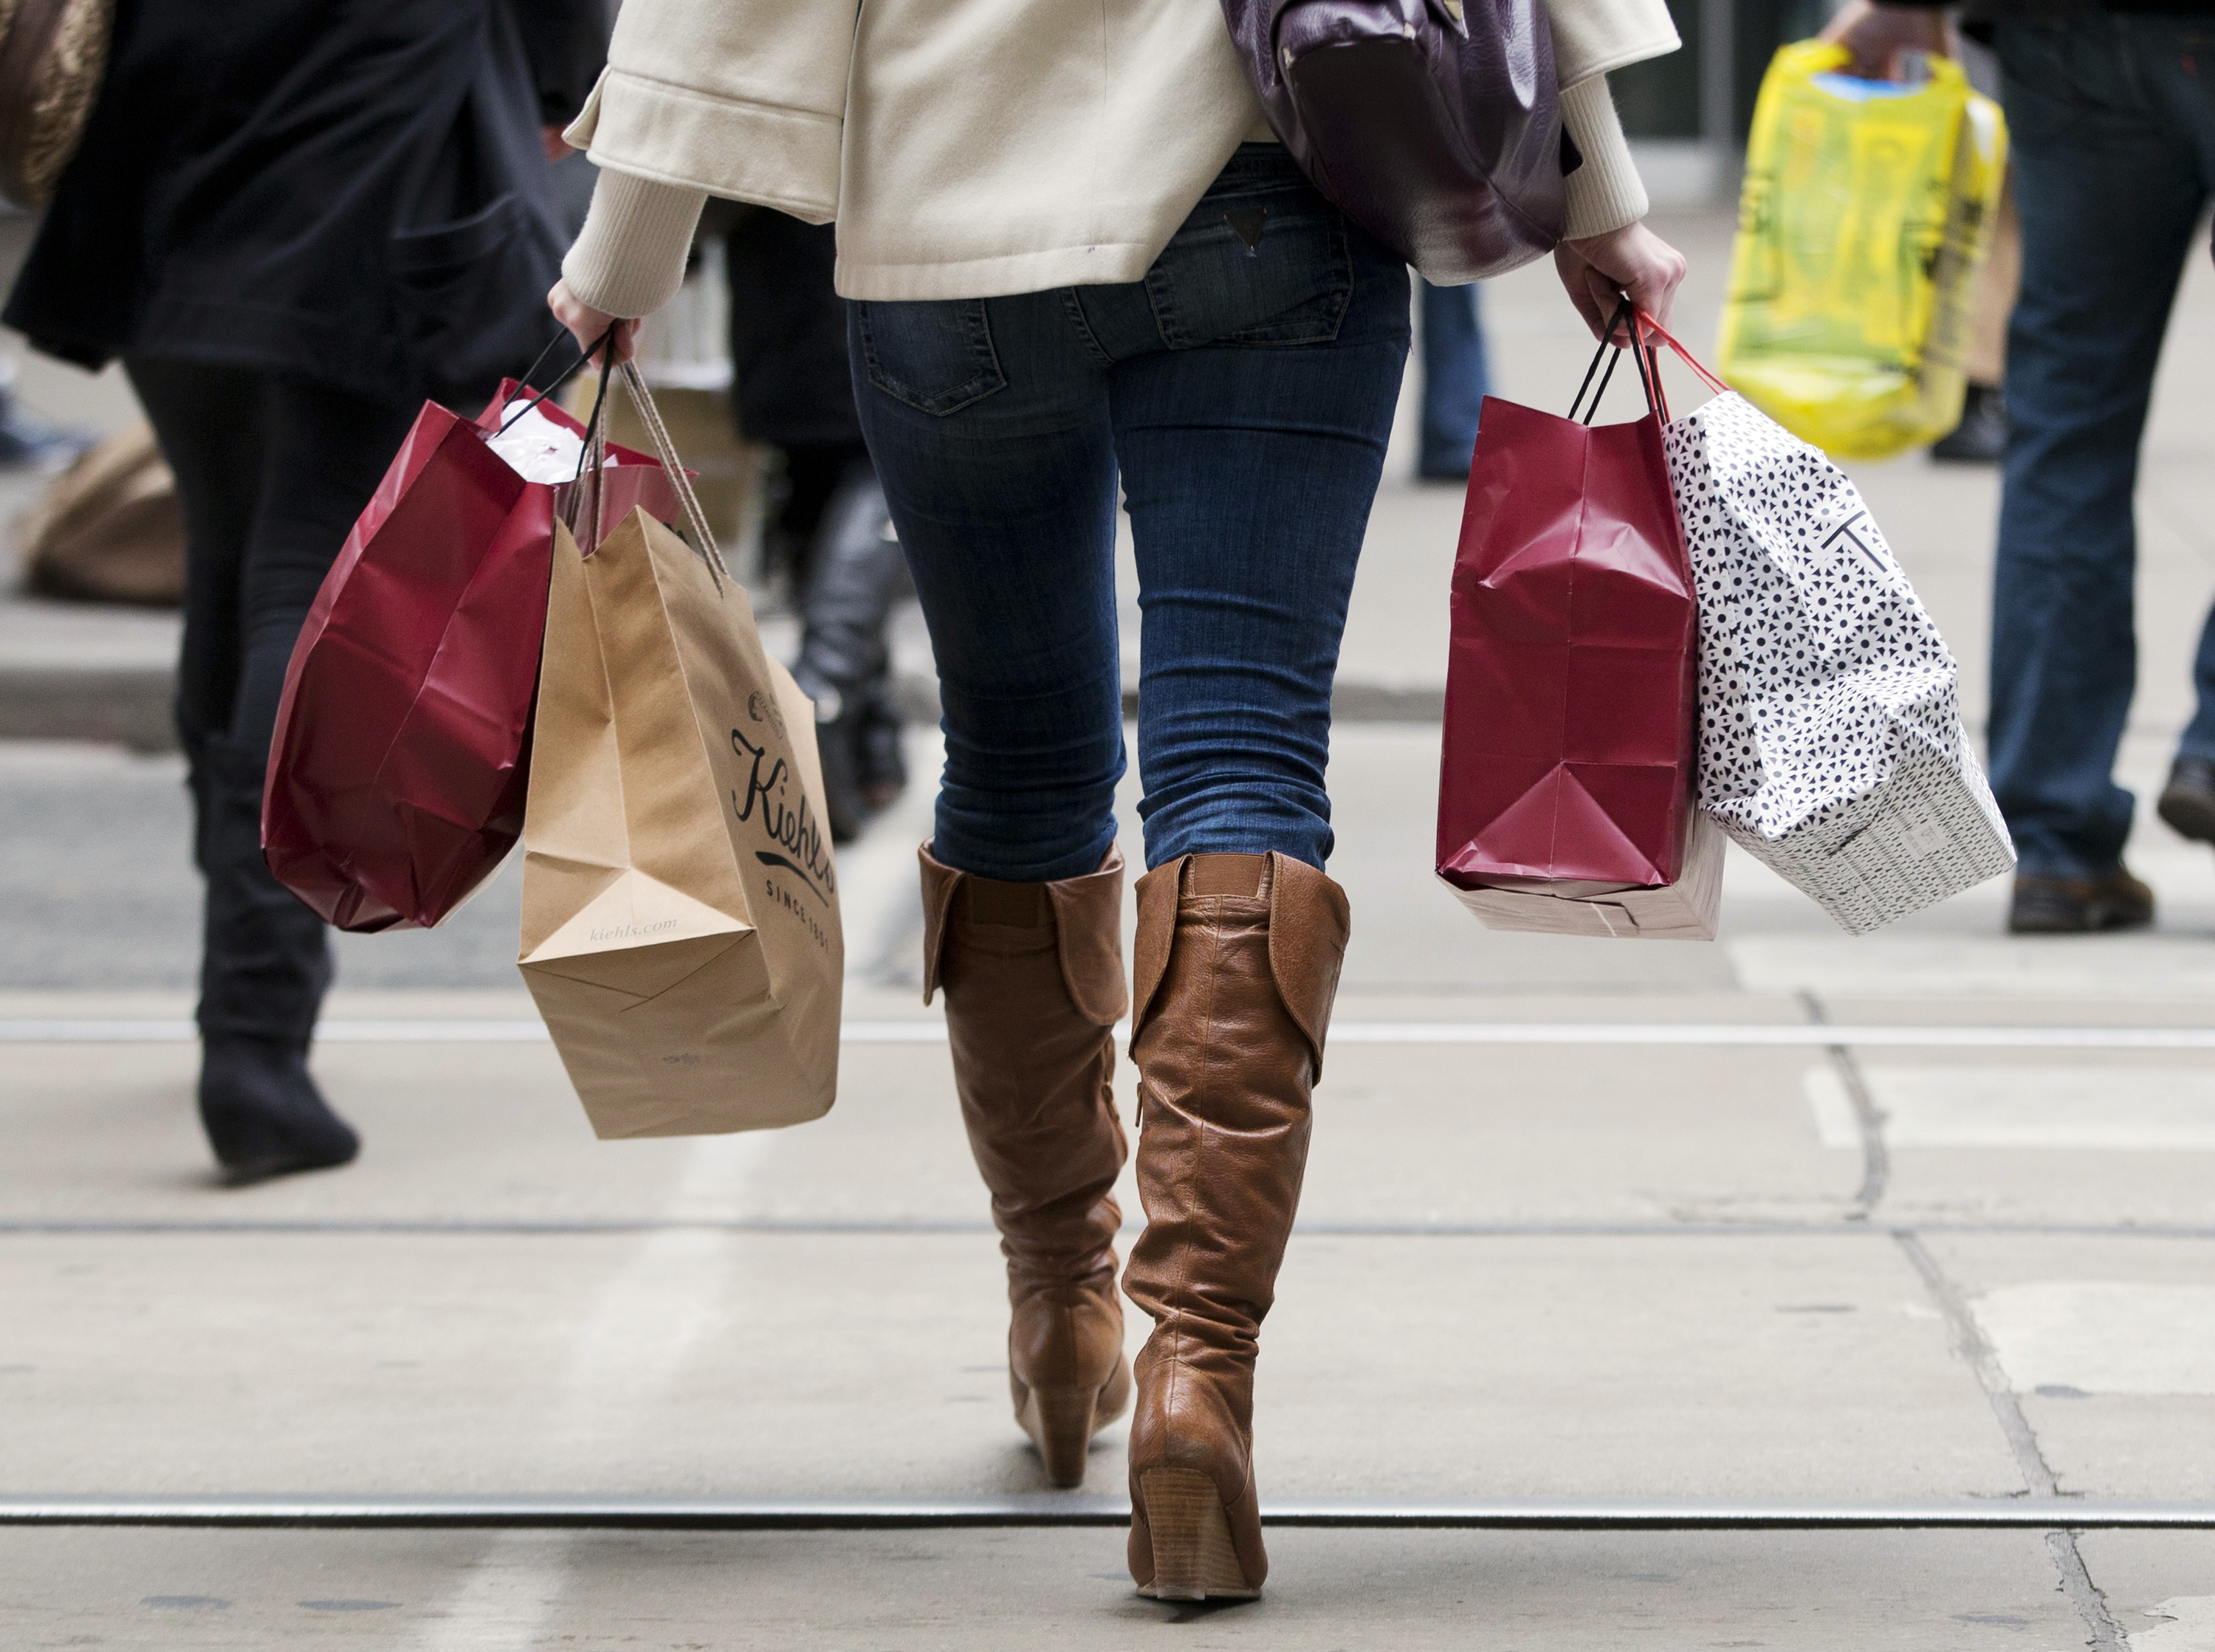 Why Shopaholics Spend: Is Psychological Addiction Really Behind Excessive Shopping Sprees?